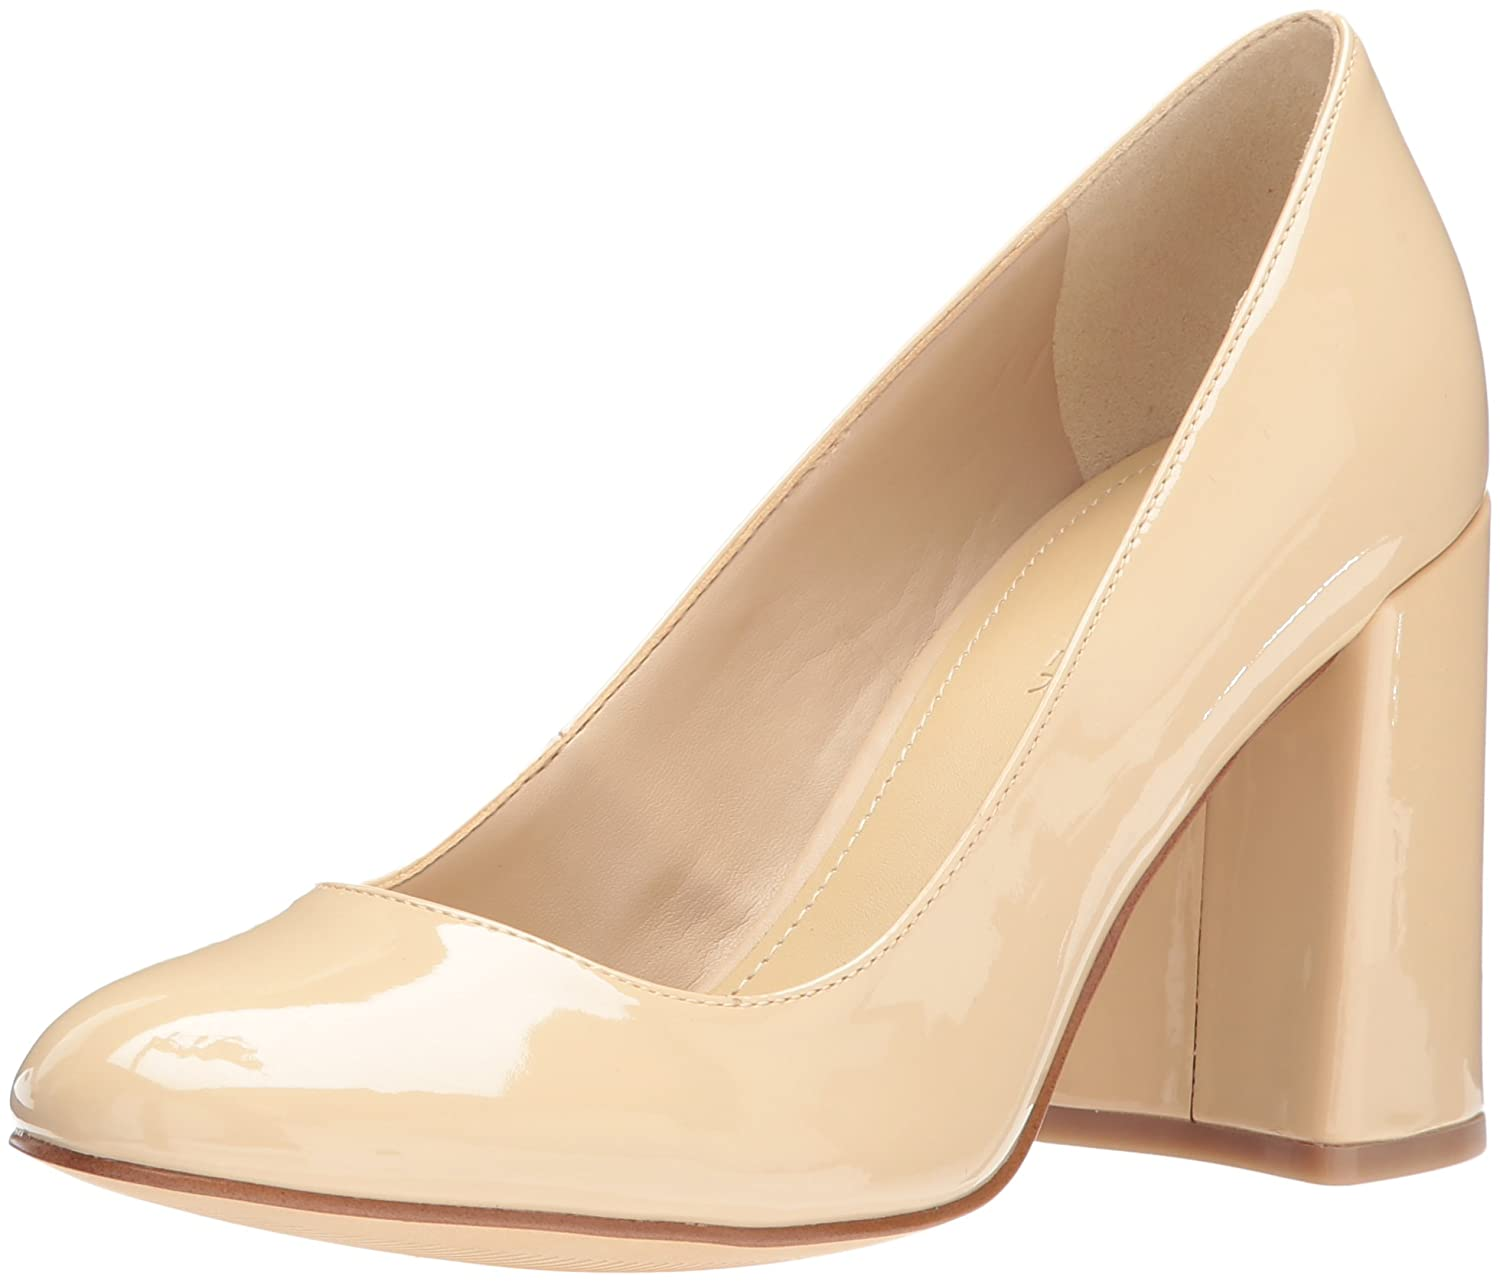 Marc Fisher Women's Ilyssa Pump B072C3FWK6 8 B(M) US|Latte